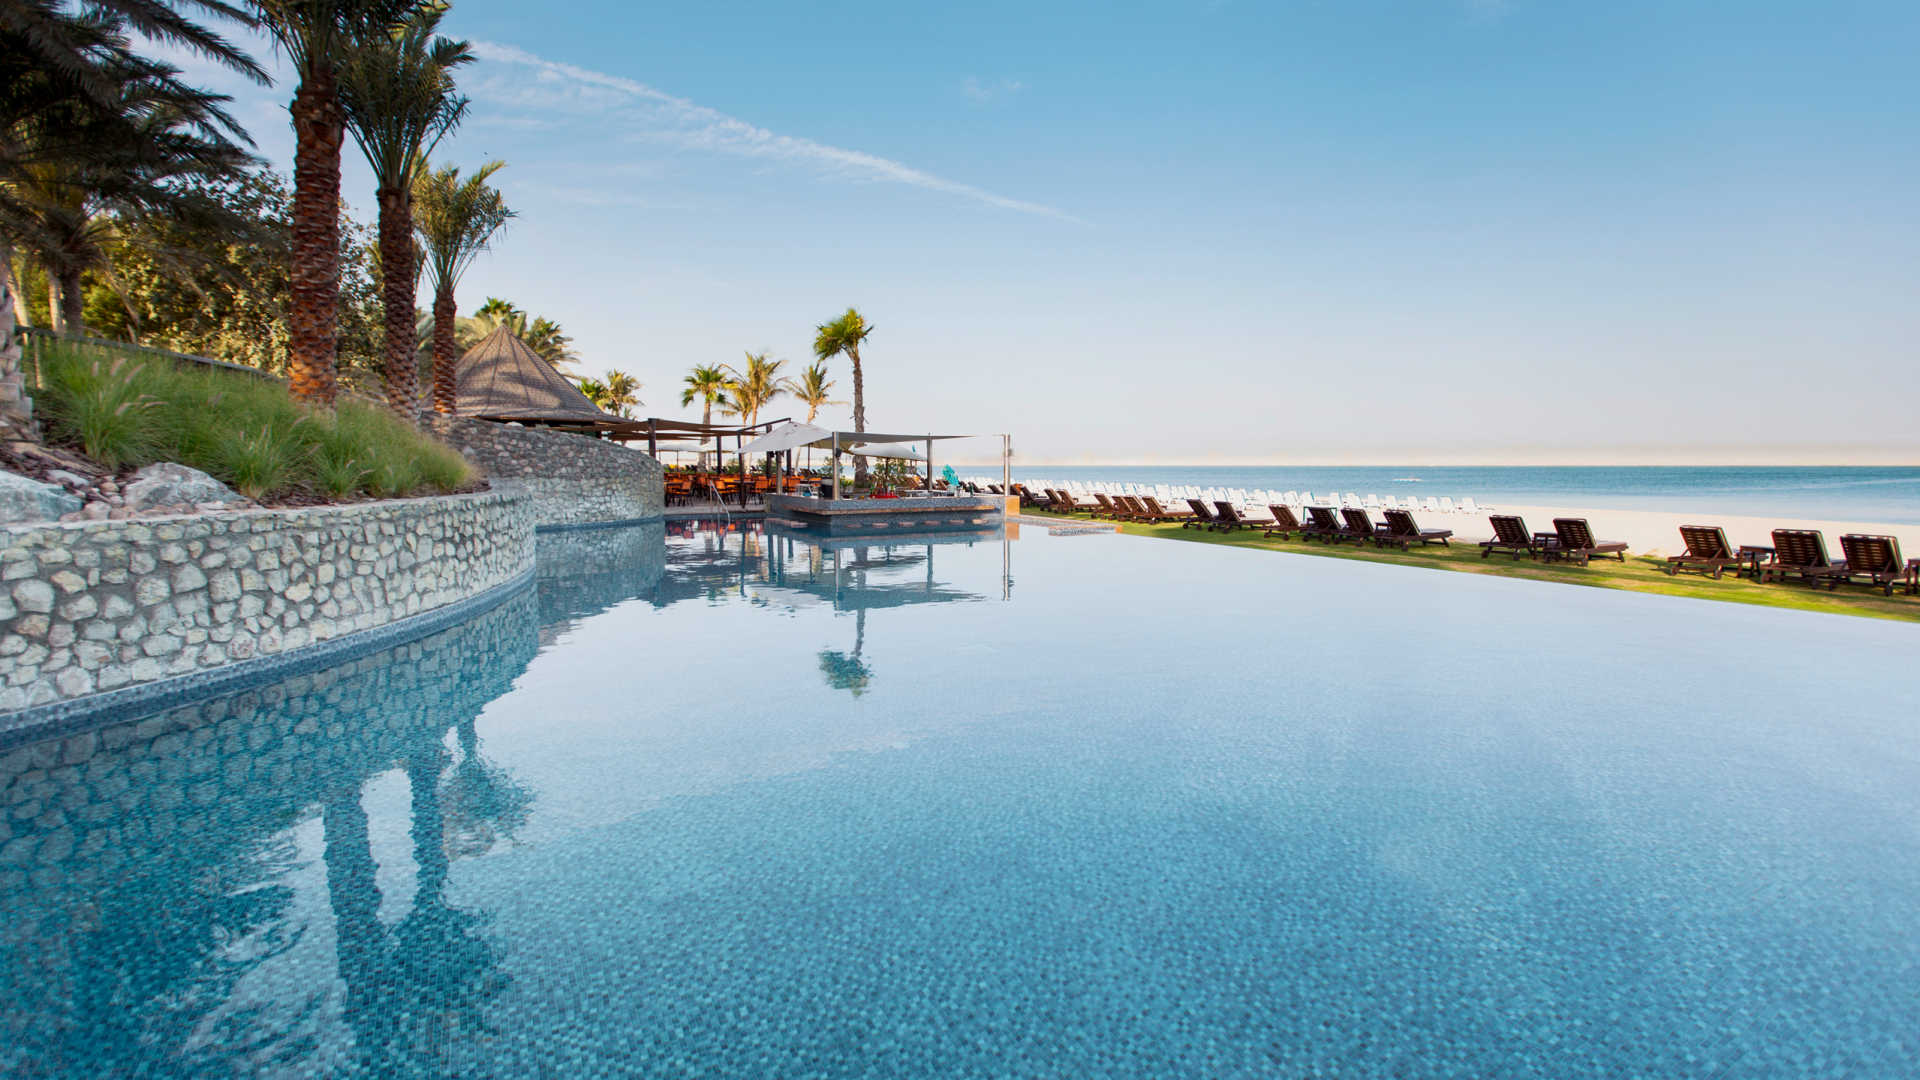 5 best all-inclusive resorts around the world 5 best all-inclusive resorts around the world 5 Best All-Inclusive Resorts Around The World ja jebel ali beach hotel 33326404 1477306263 ImageGalleryLightboxLarge